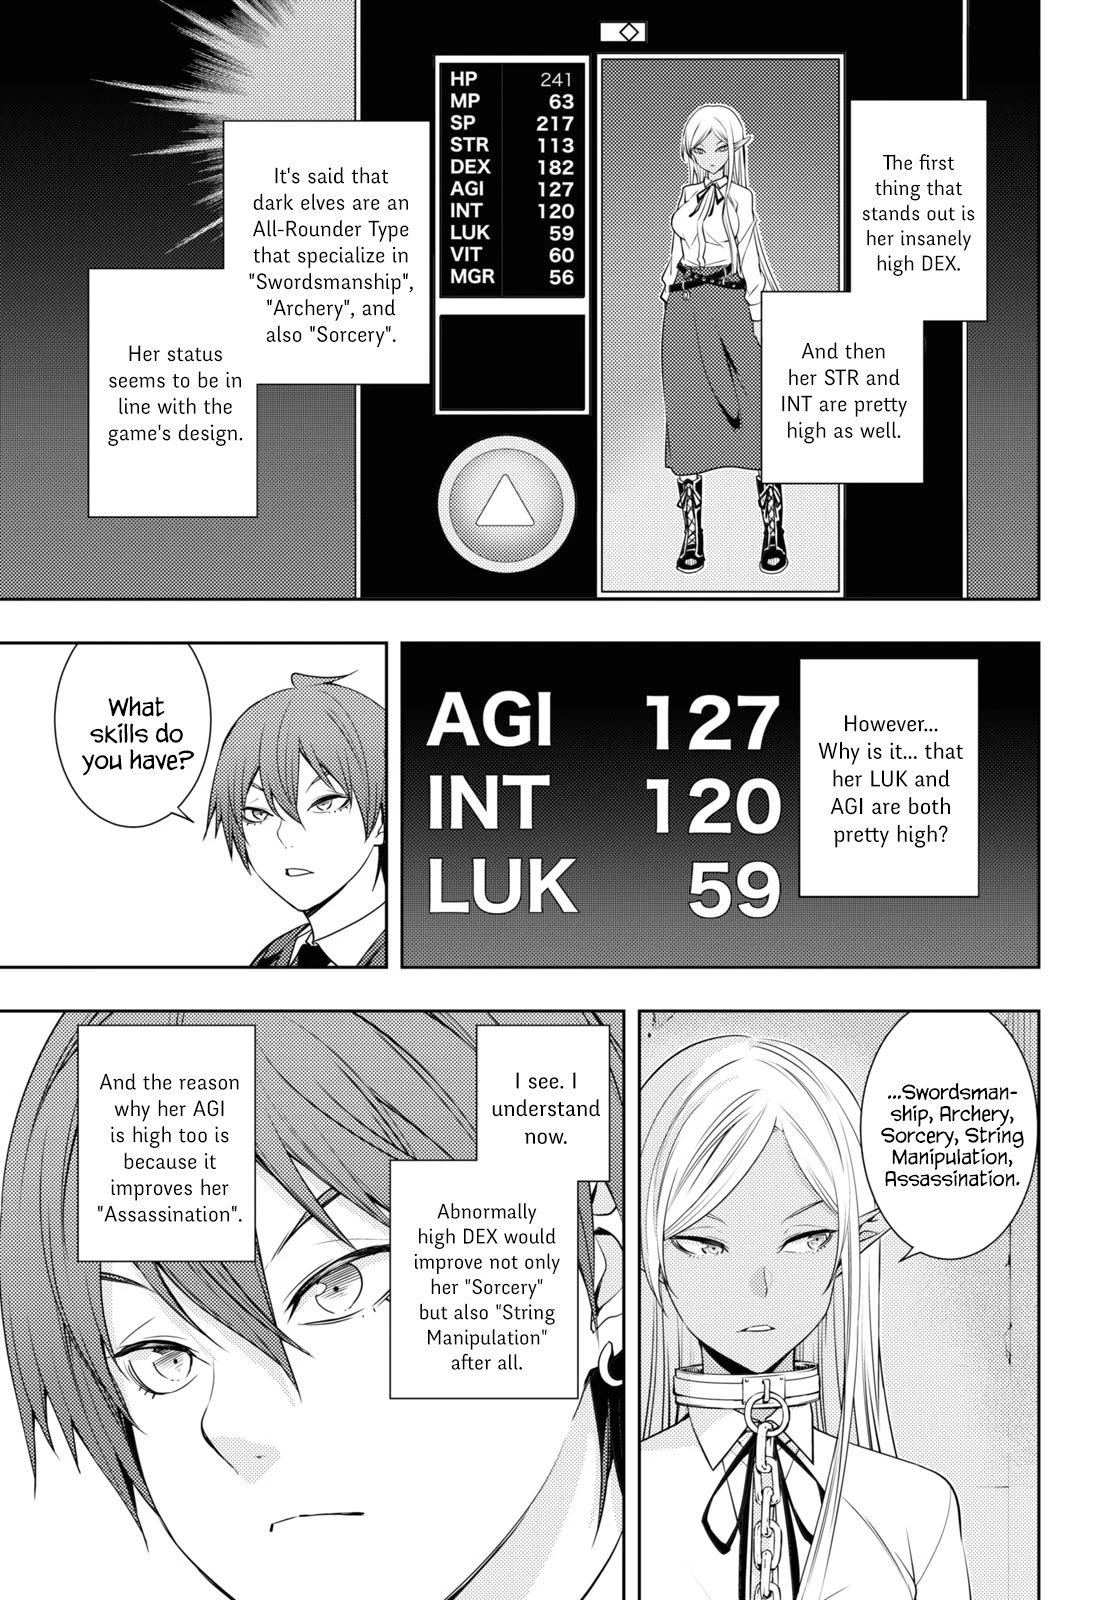 Manga The Former Top 1's Sub-Character Training Diary ~A Dedicated Player is Currently Conquering Another World!~ - Chapter 18 Page 13